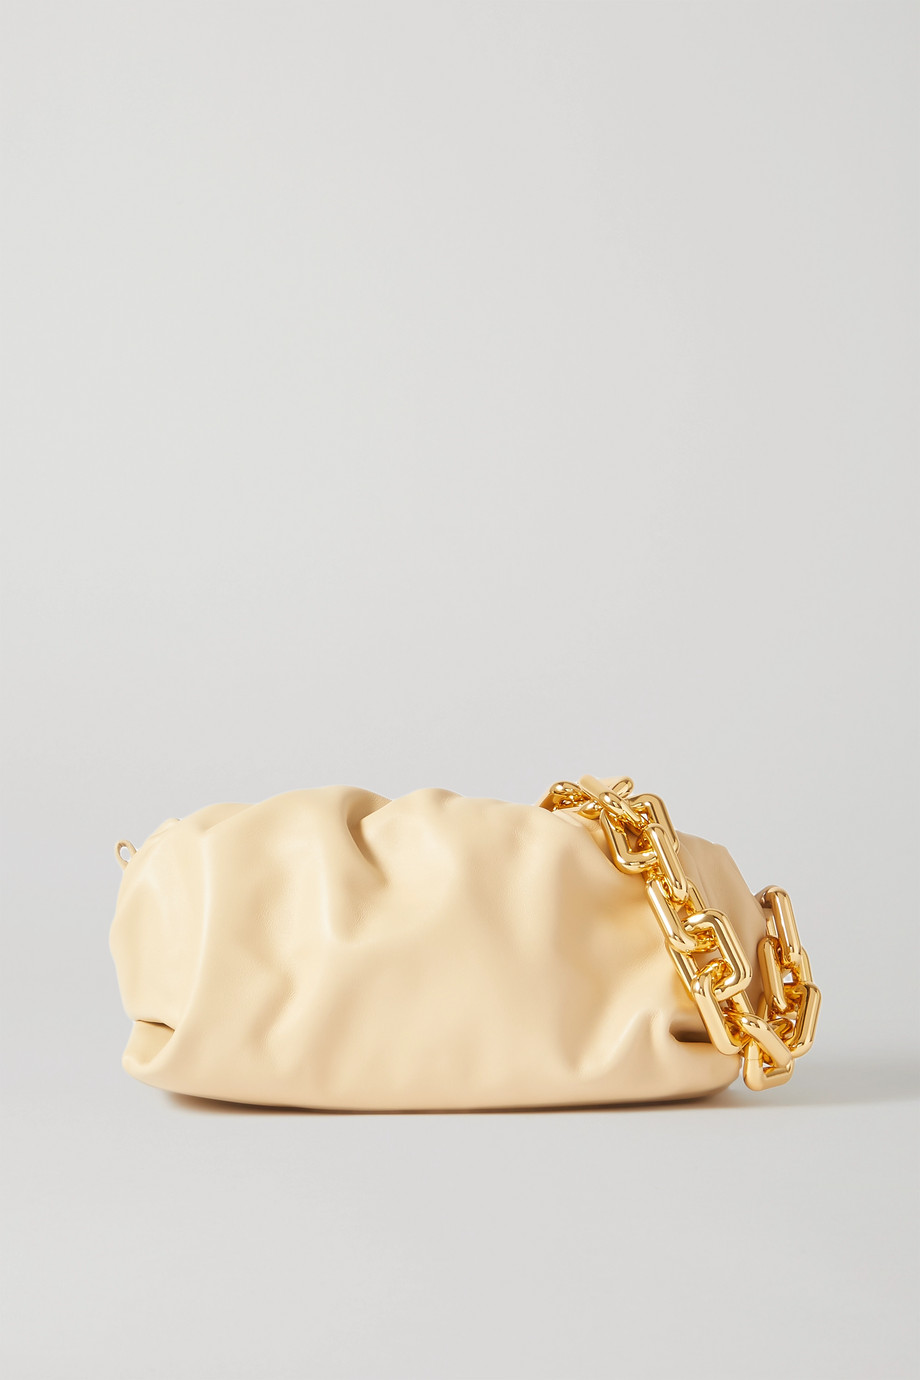 Bottega Veneta The Chain Pouch 缩褶皮革手拿包